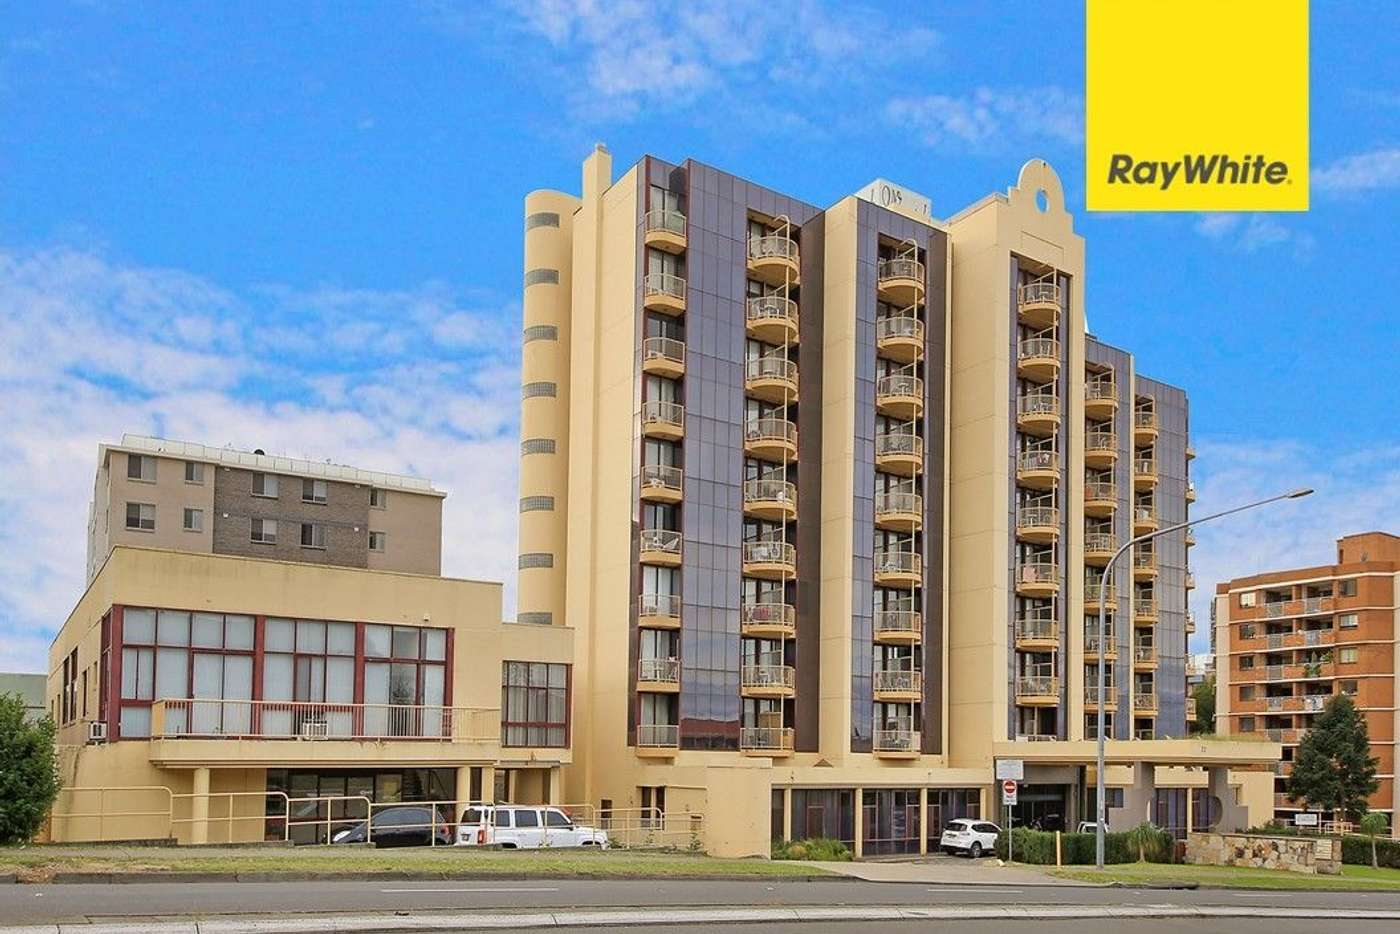 Main view of Homely apartment listing, 94/22 Great Western Highway, Parramatta NSW 2150